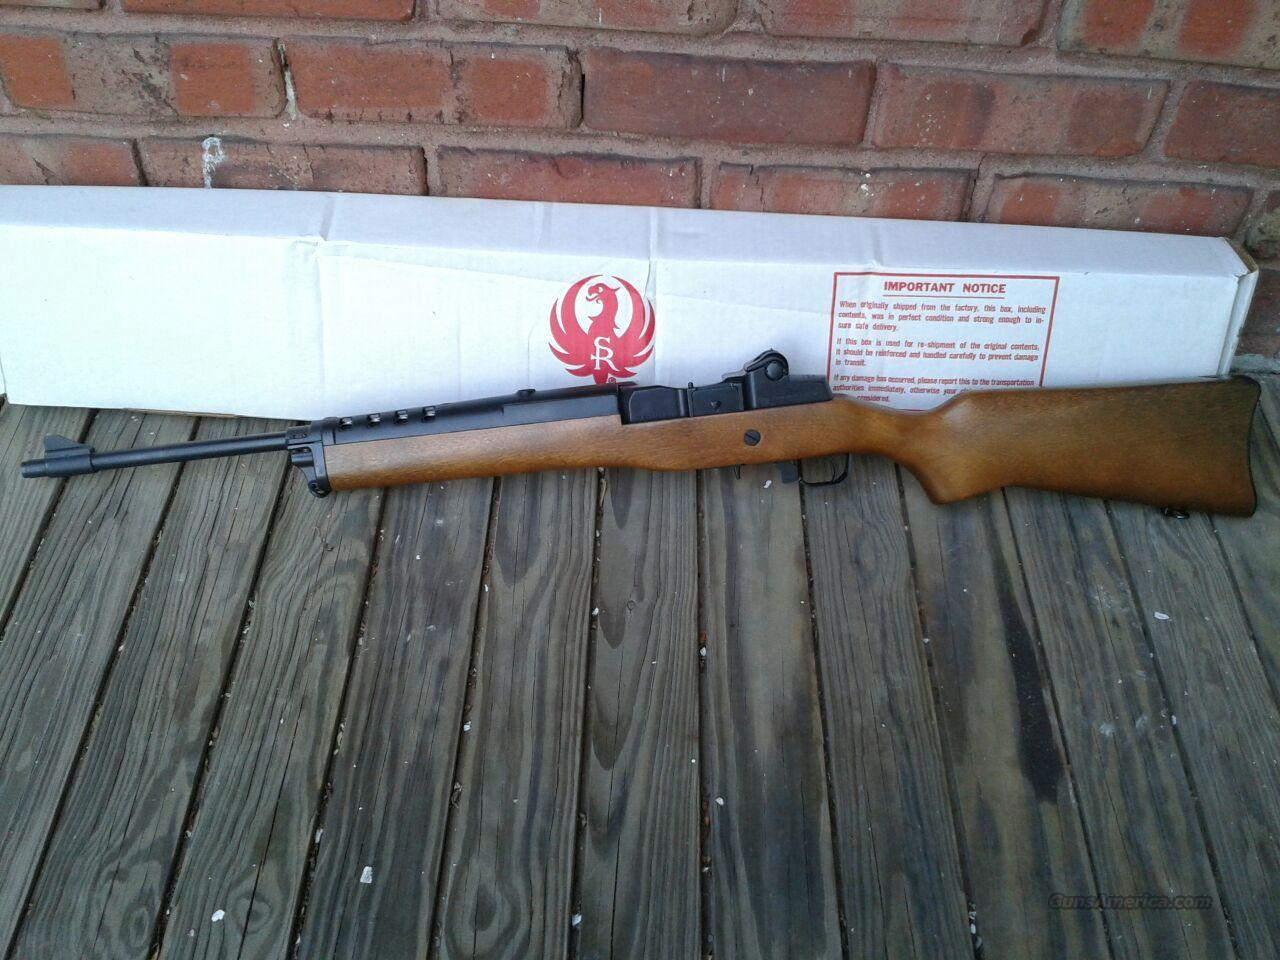 Ruger Mini-14/5 .223/5.56 Earlier Model Ranch Rifle - New - Made in Early- to Mid-1990s  Guns > Rifles > Ruger Rifles > Mini-14 Type